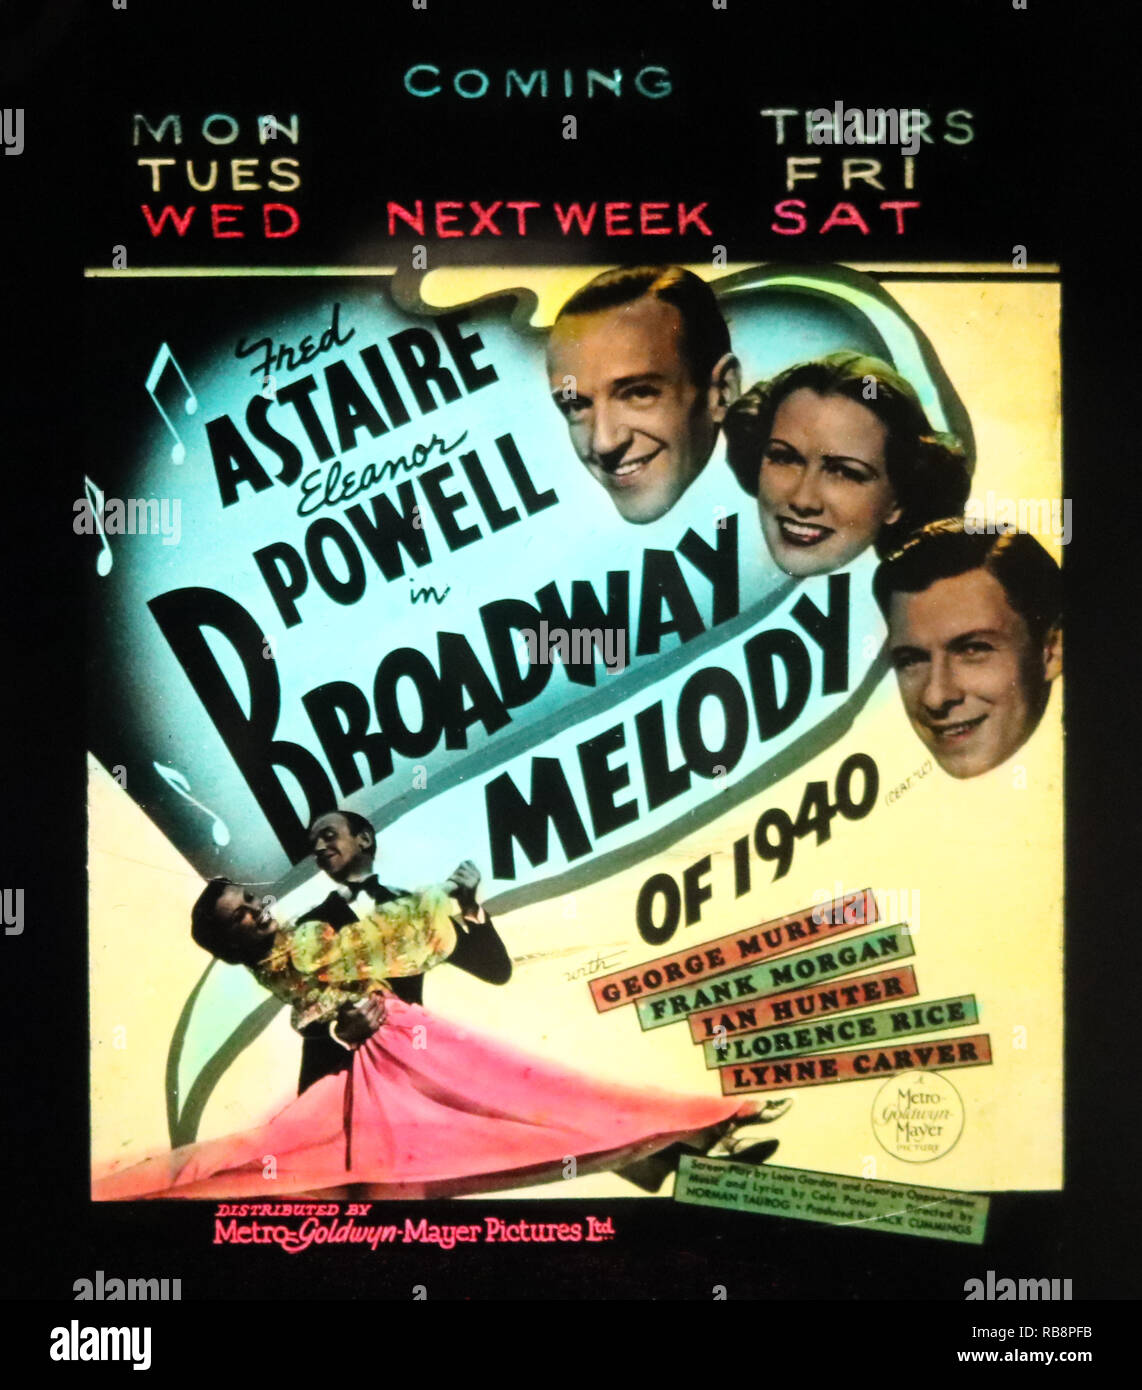 Fred Astaire Eleanor Powell 'Broadway Melody' movie advertisement - Stock Image